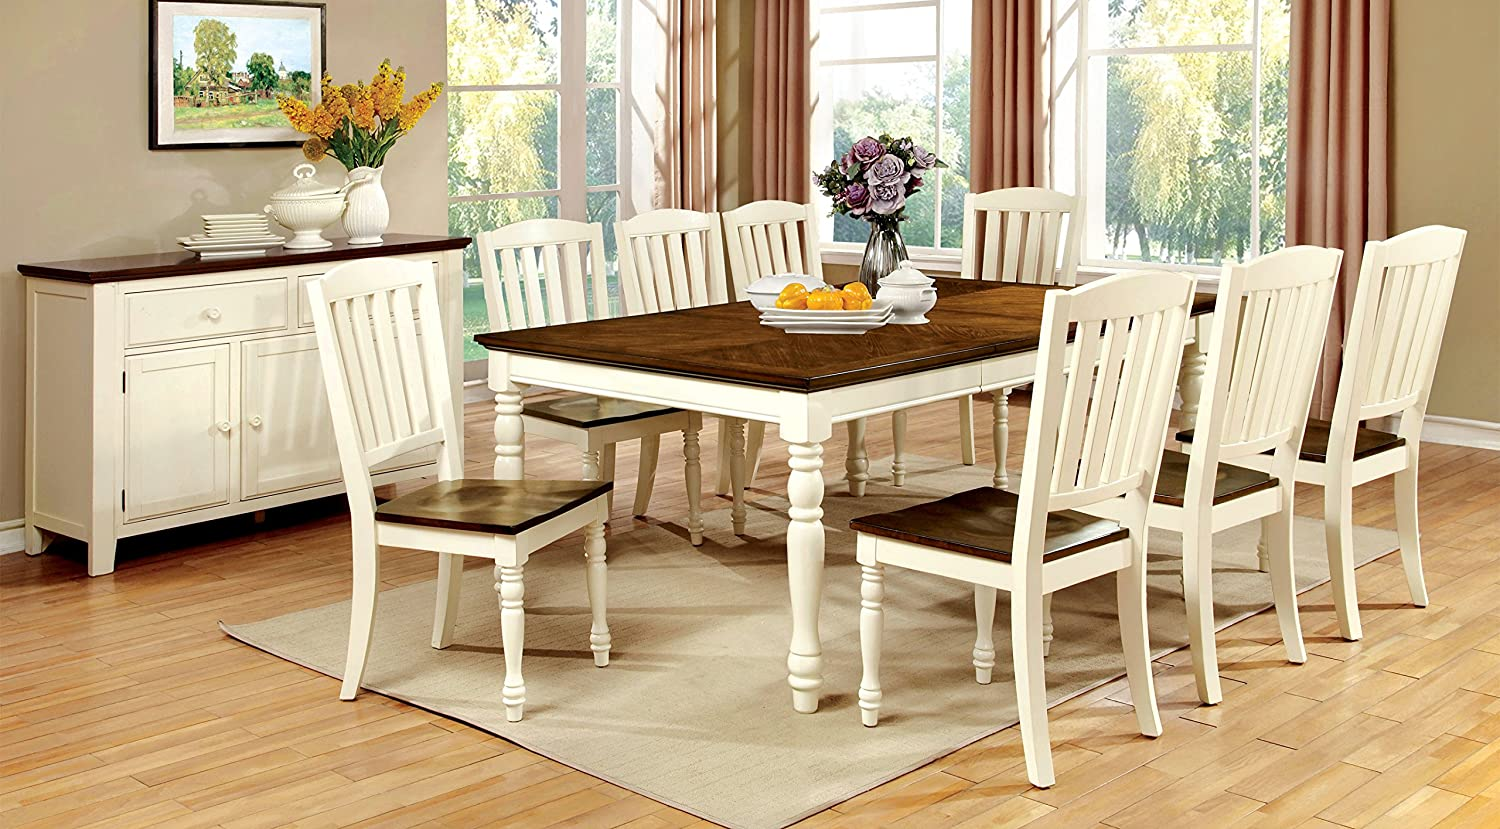 Amazon com furniture of america idf 3216t 9pc pauline 9 piece cottage style dining set table chair sets